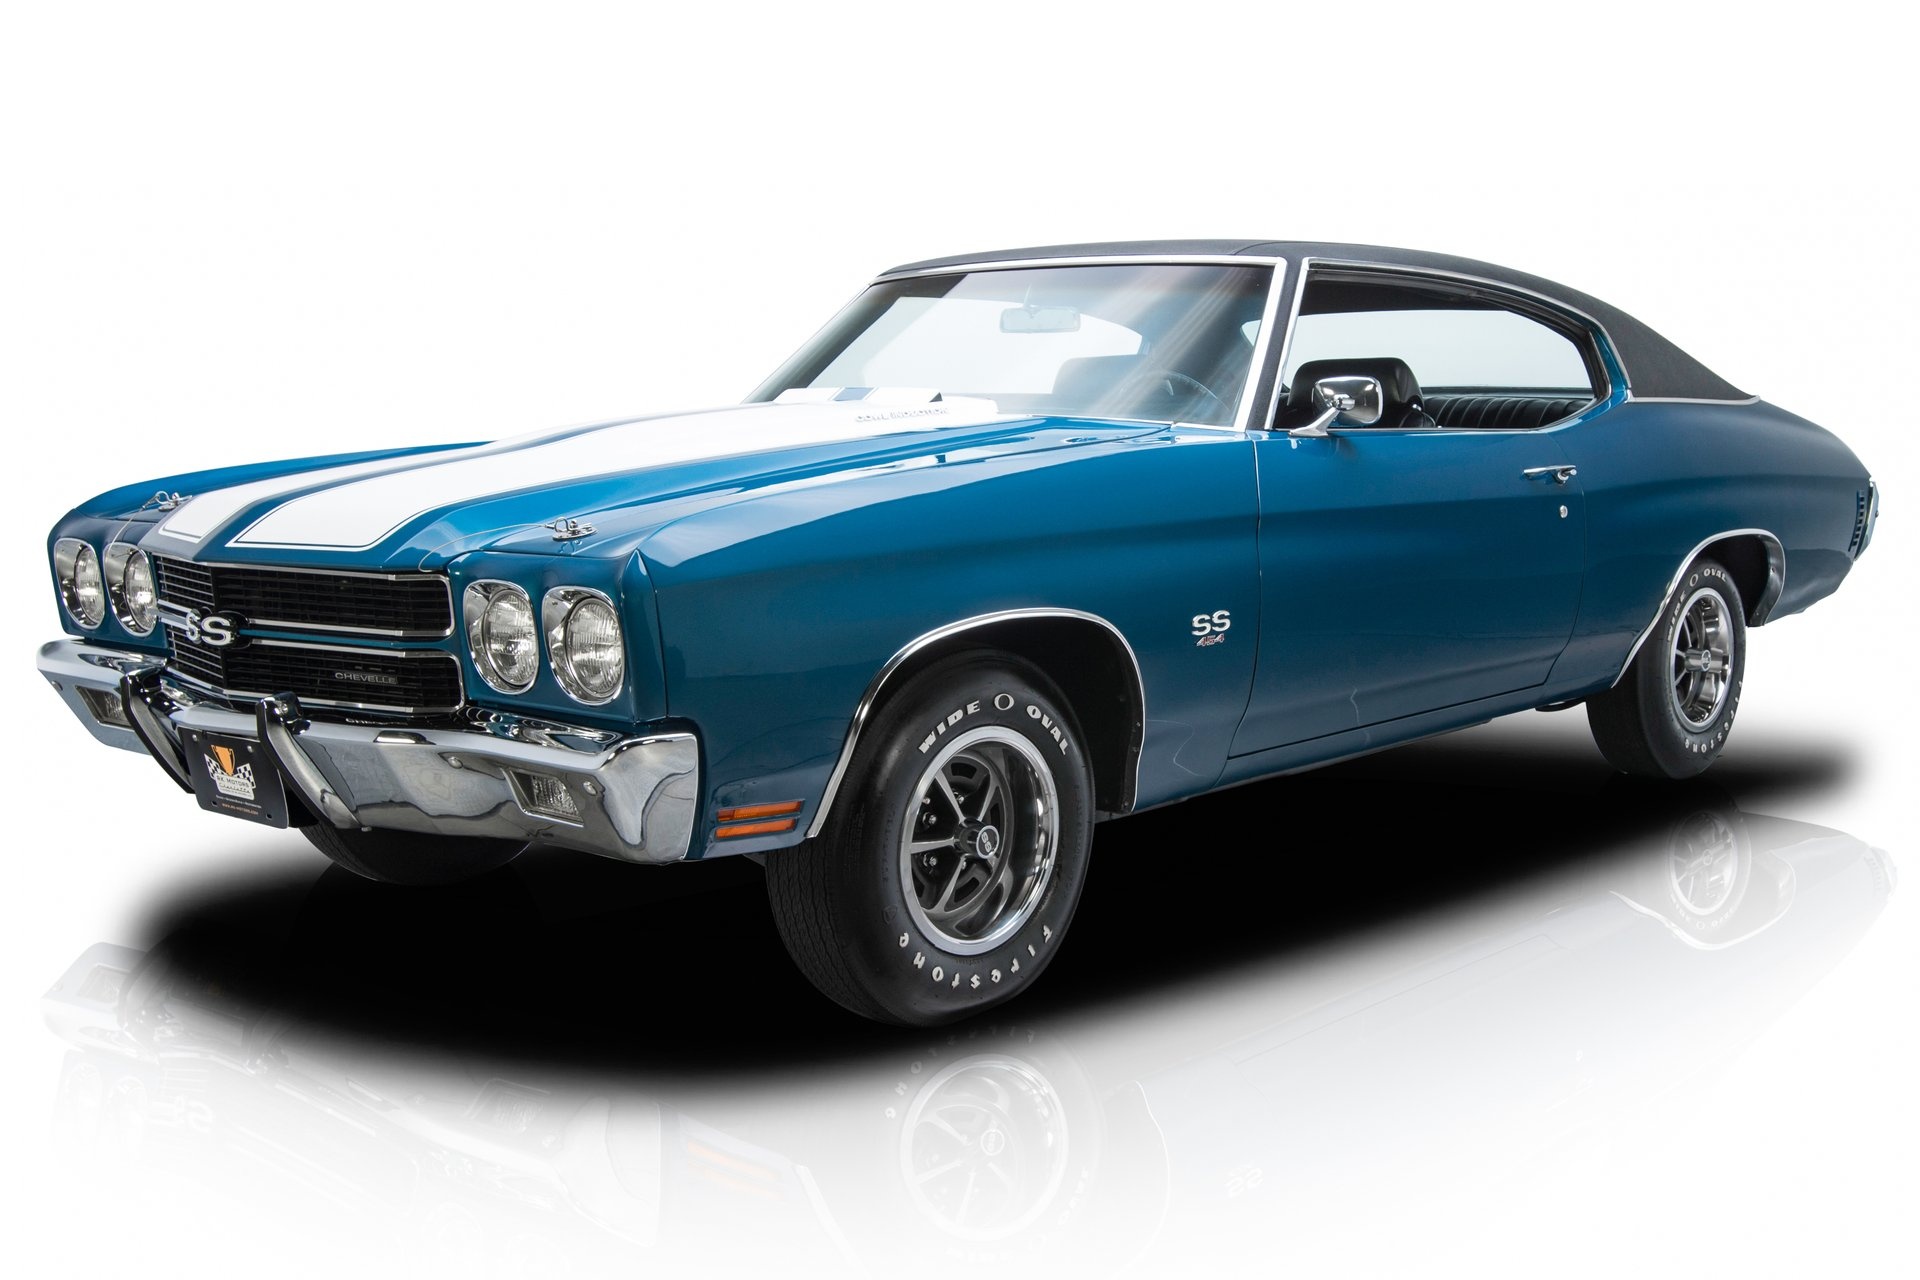 136408 1970 Chevrolet Chevelle Rk Motors Classic Cars And Muscle Cars For Sale